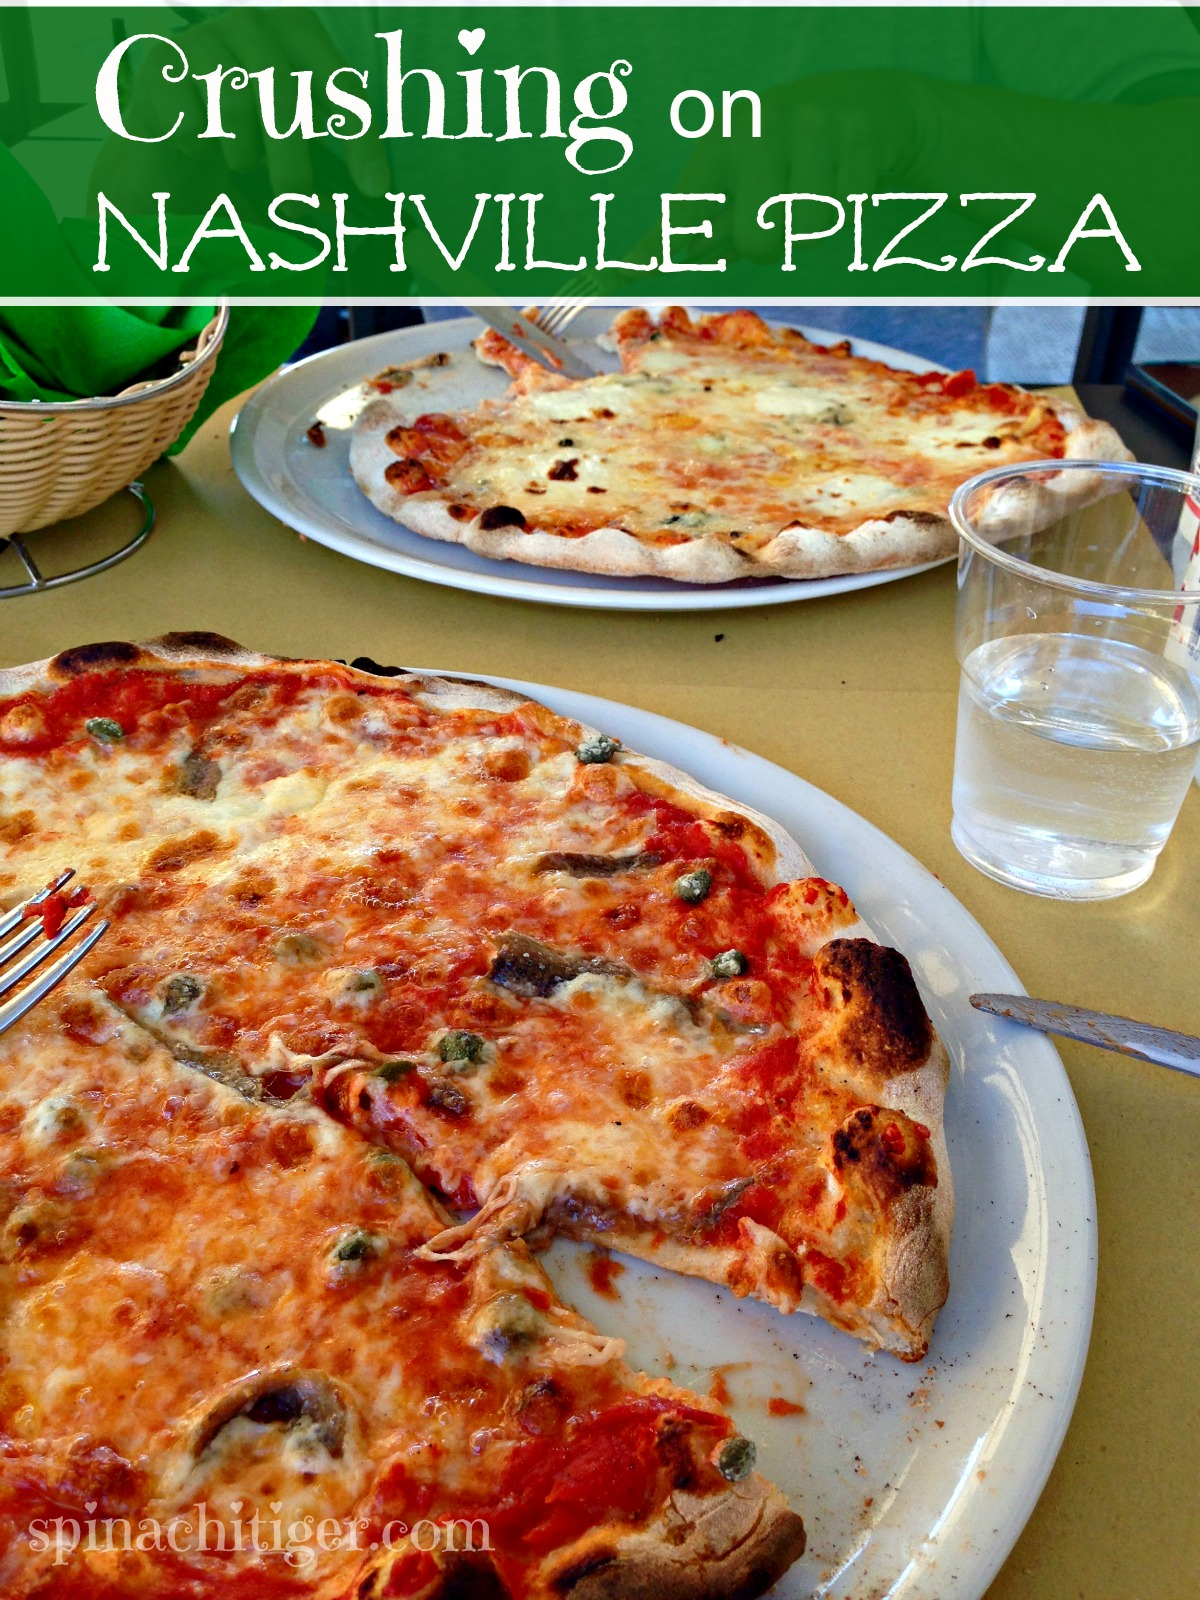 Crushing on Nashville PIzza from Spinach Tiger